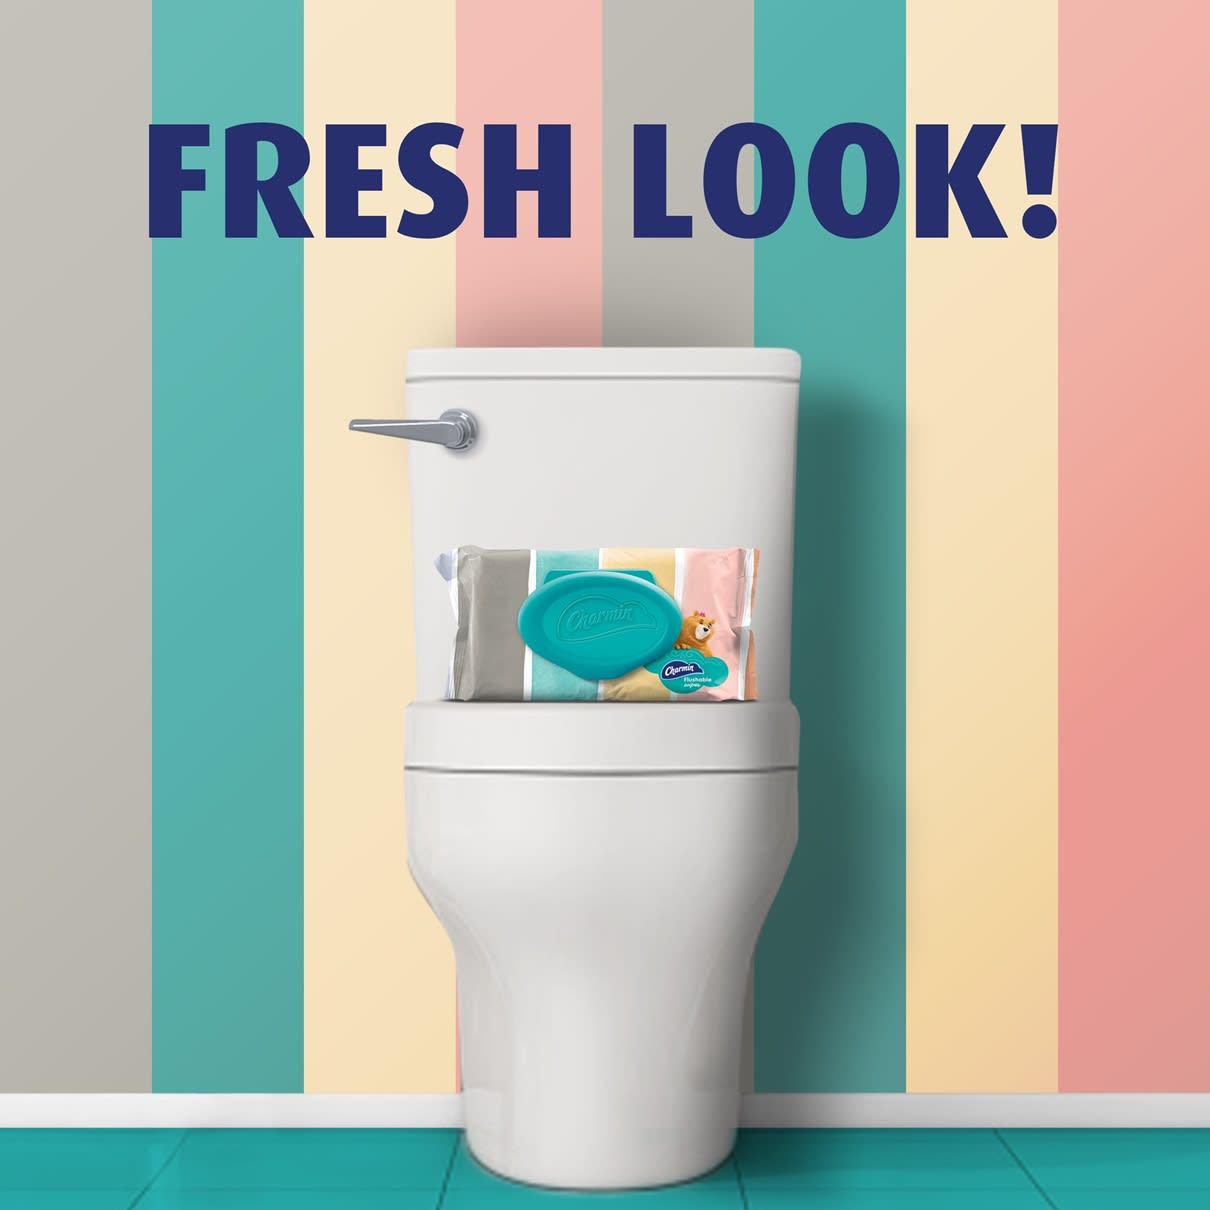 Get Fresh look with flushable wipes